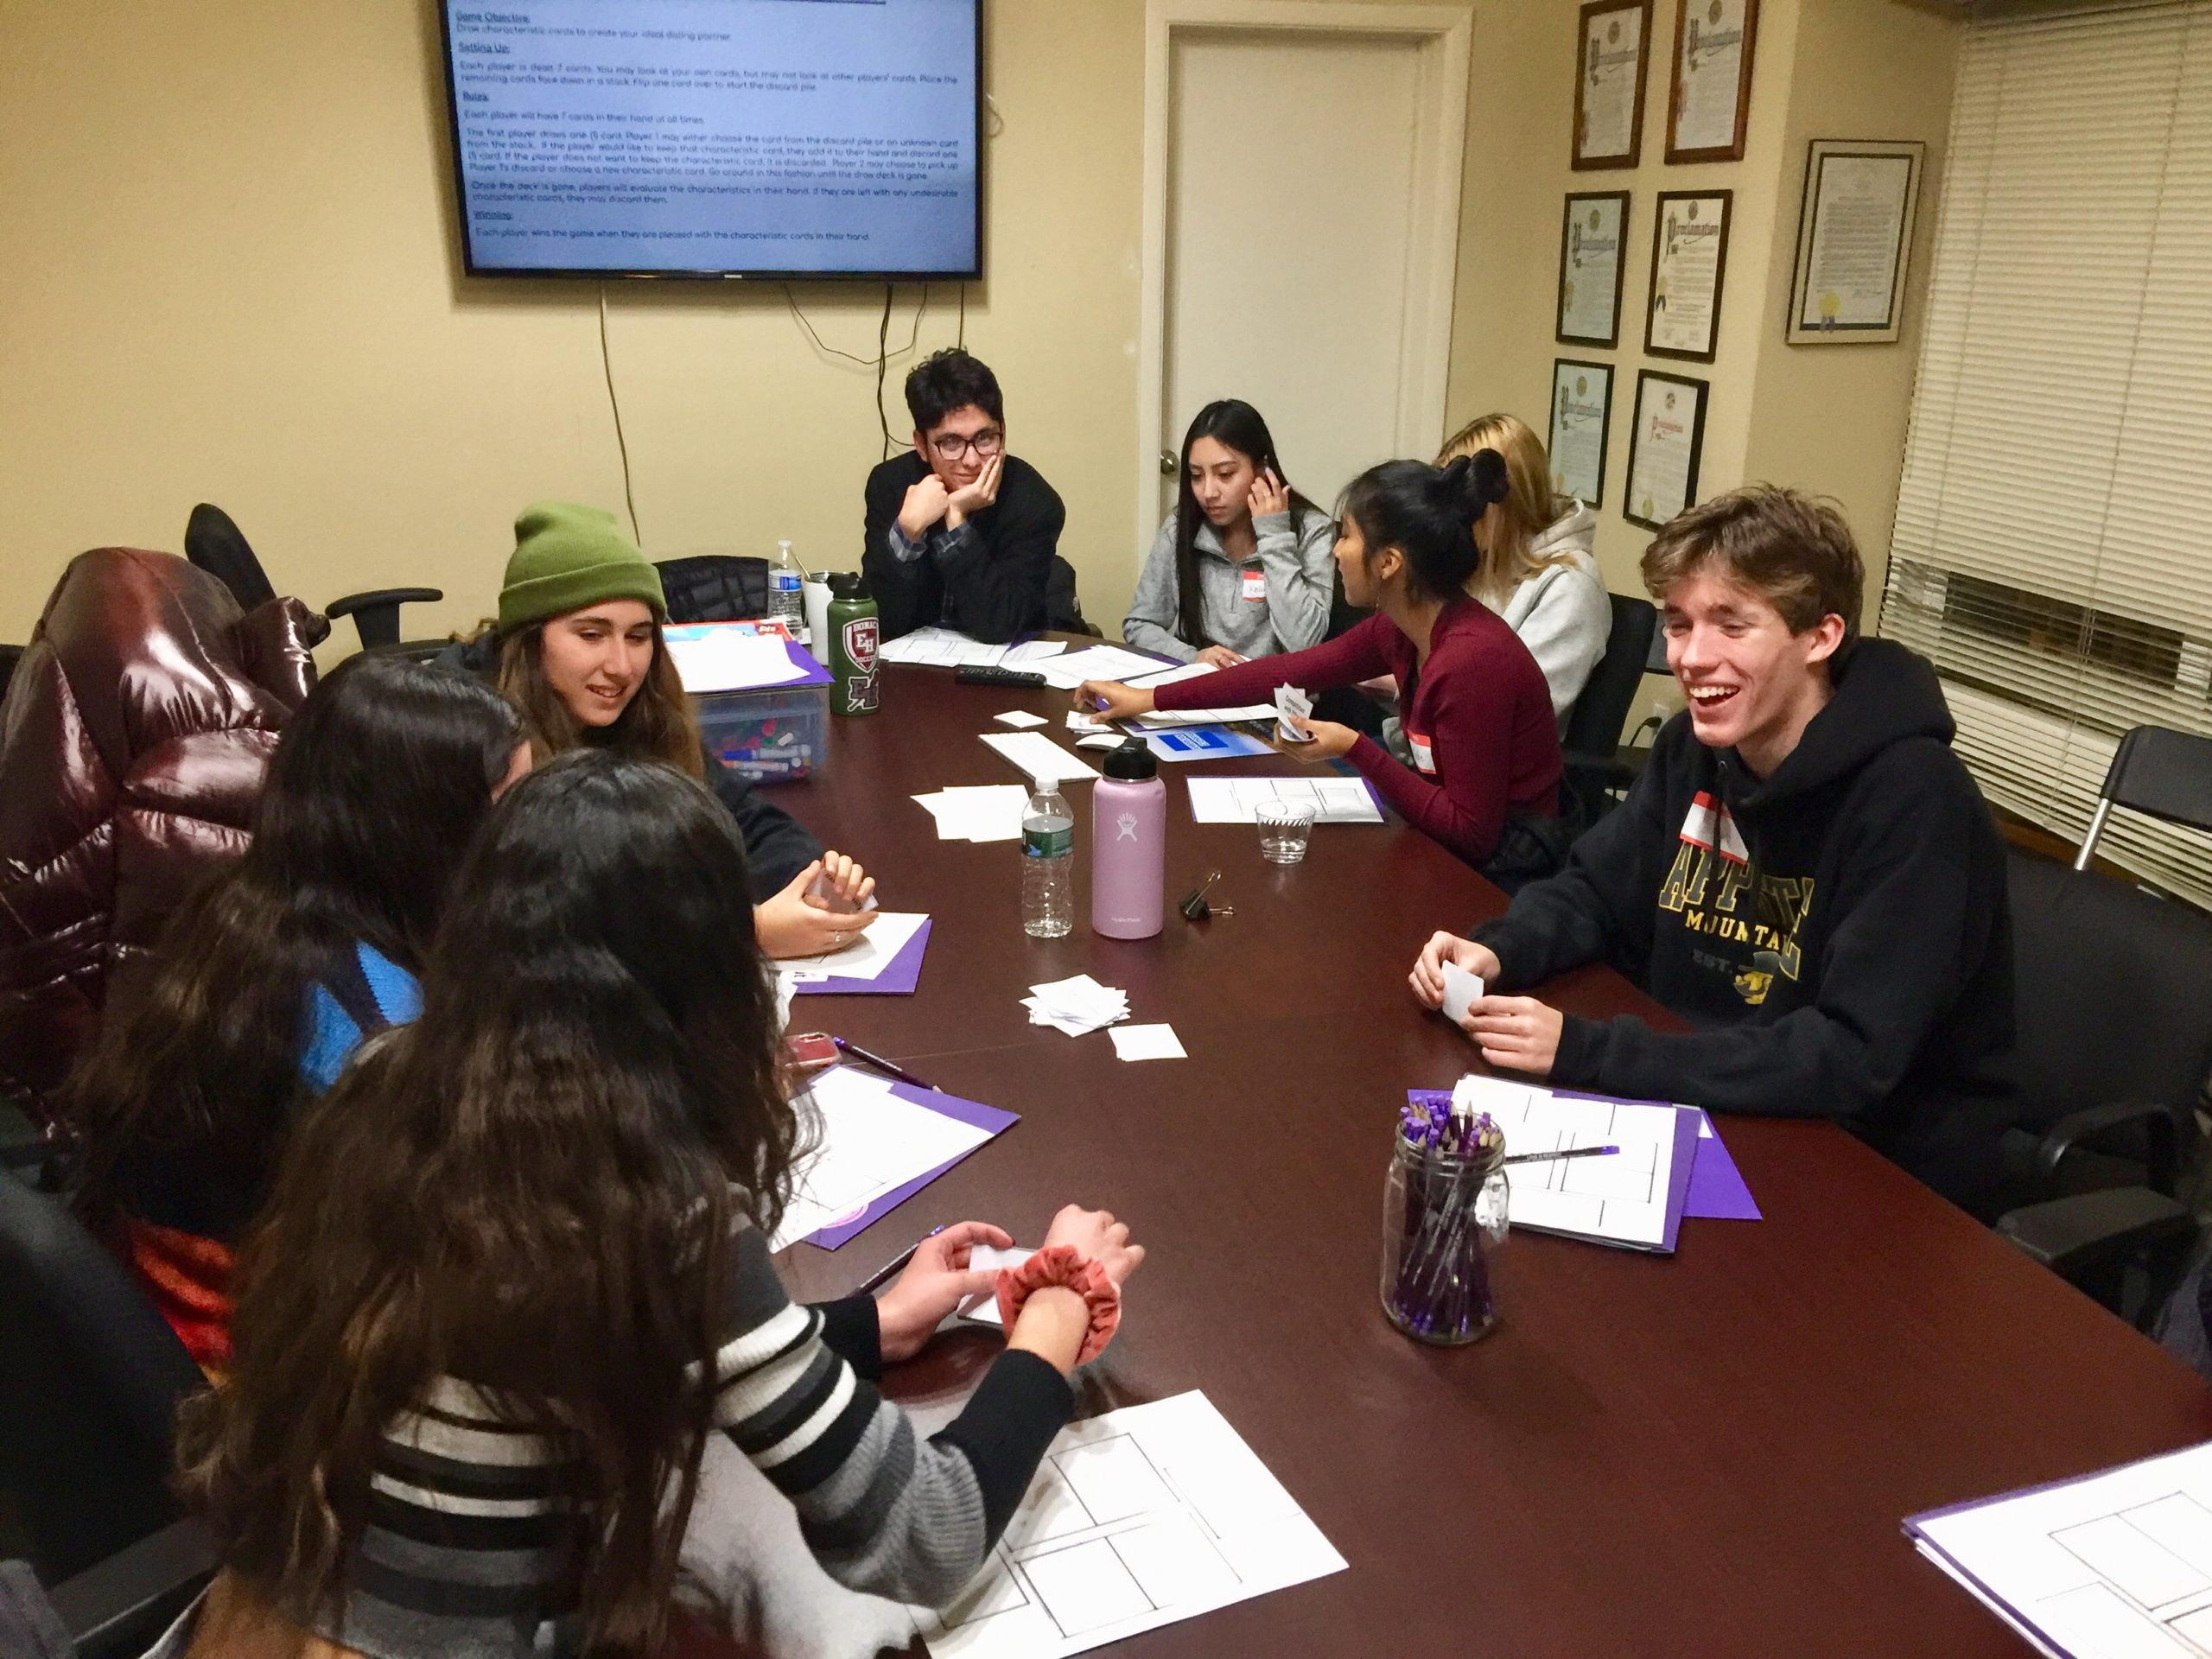 The East Hampton teen leadership team working with The Retreat prior to the Covid-19 virus outbreak.